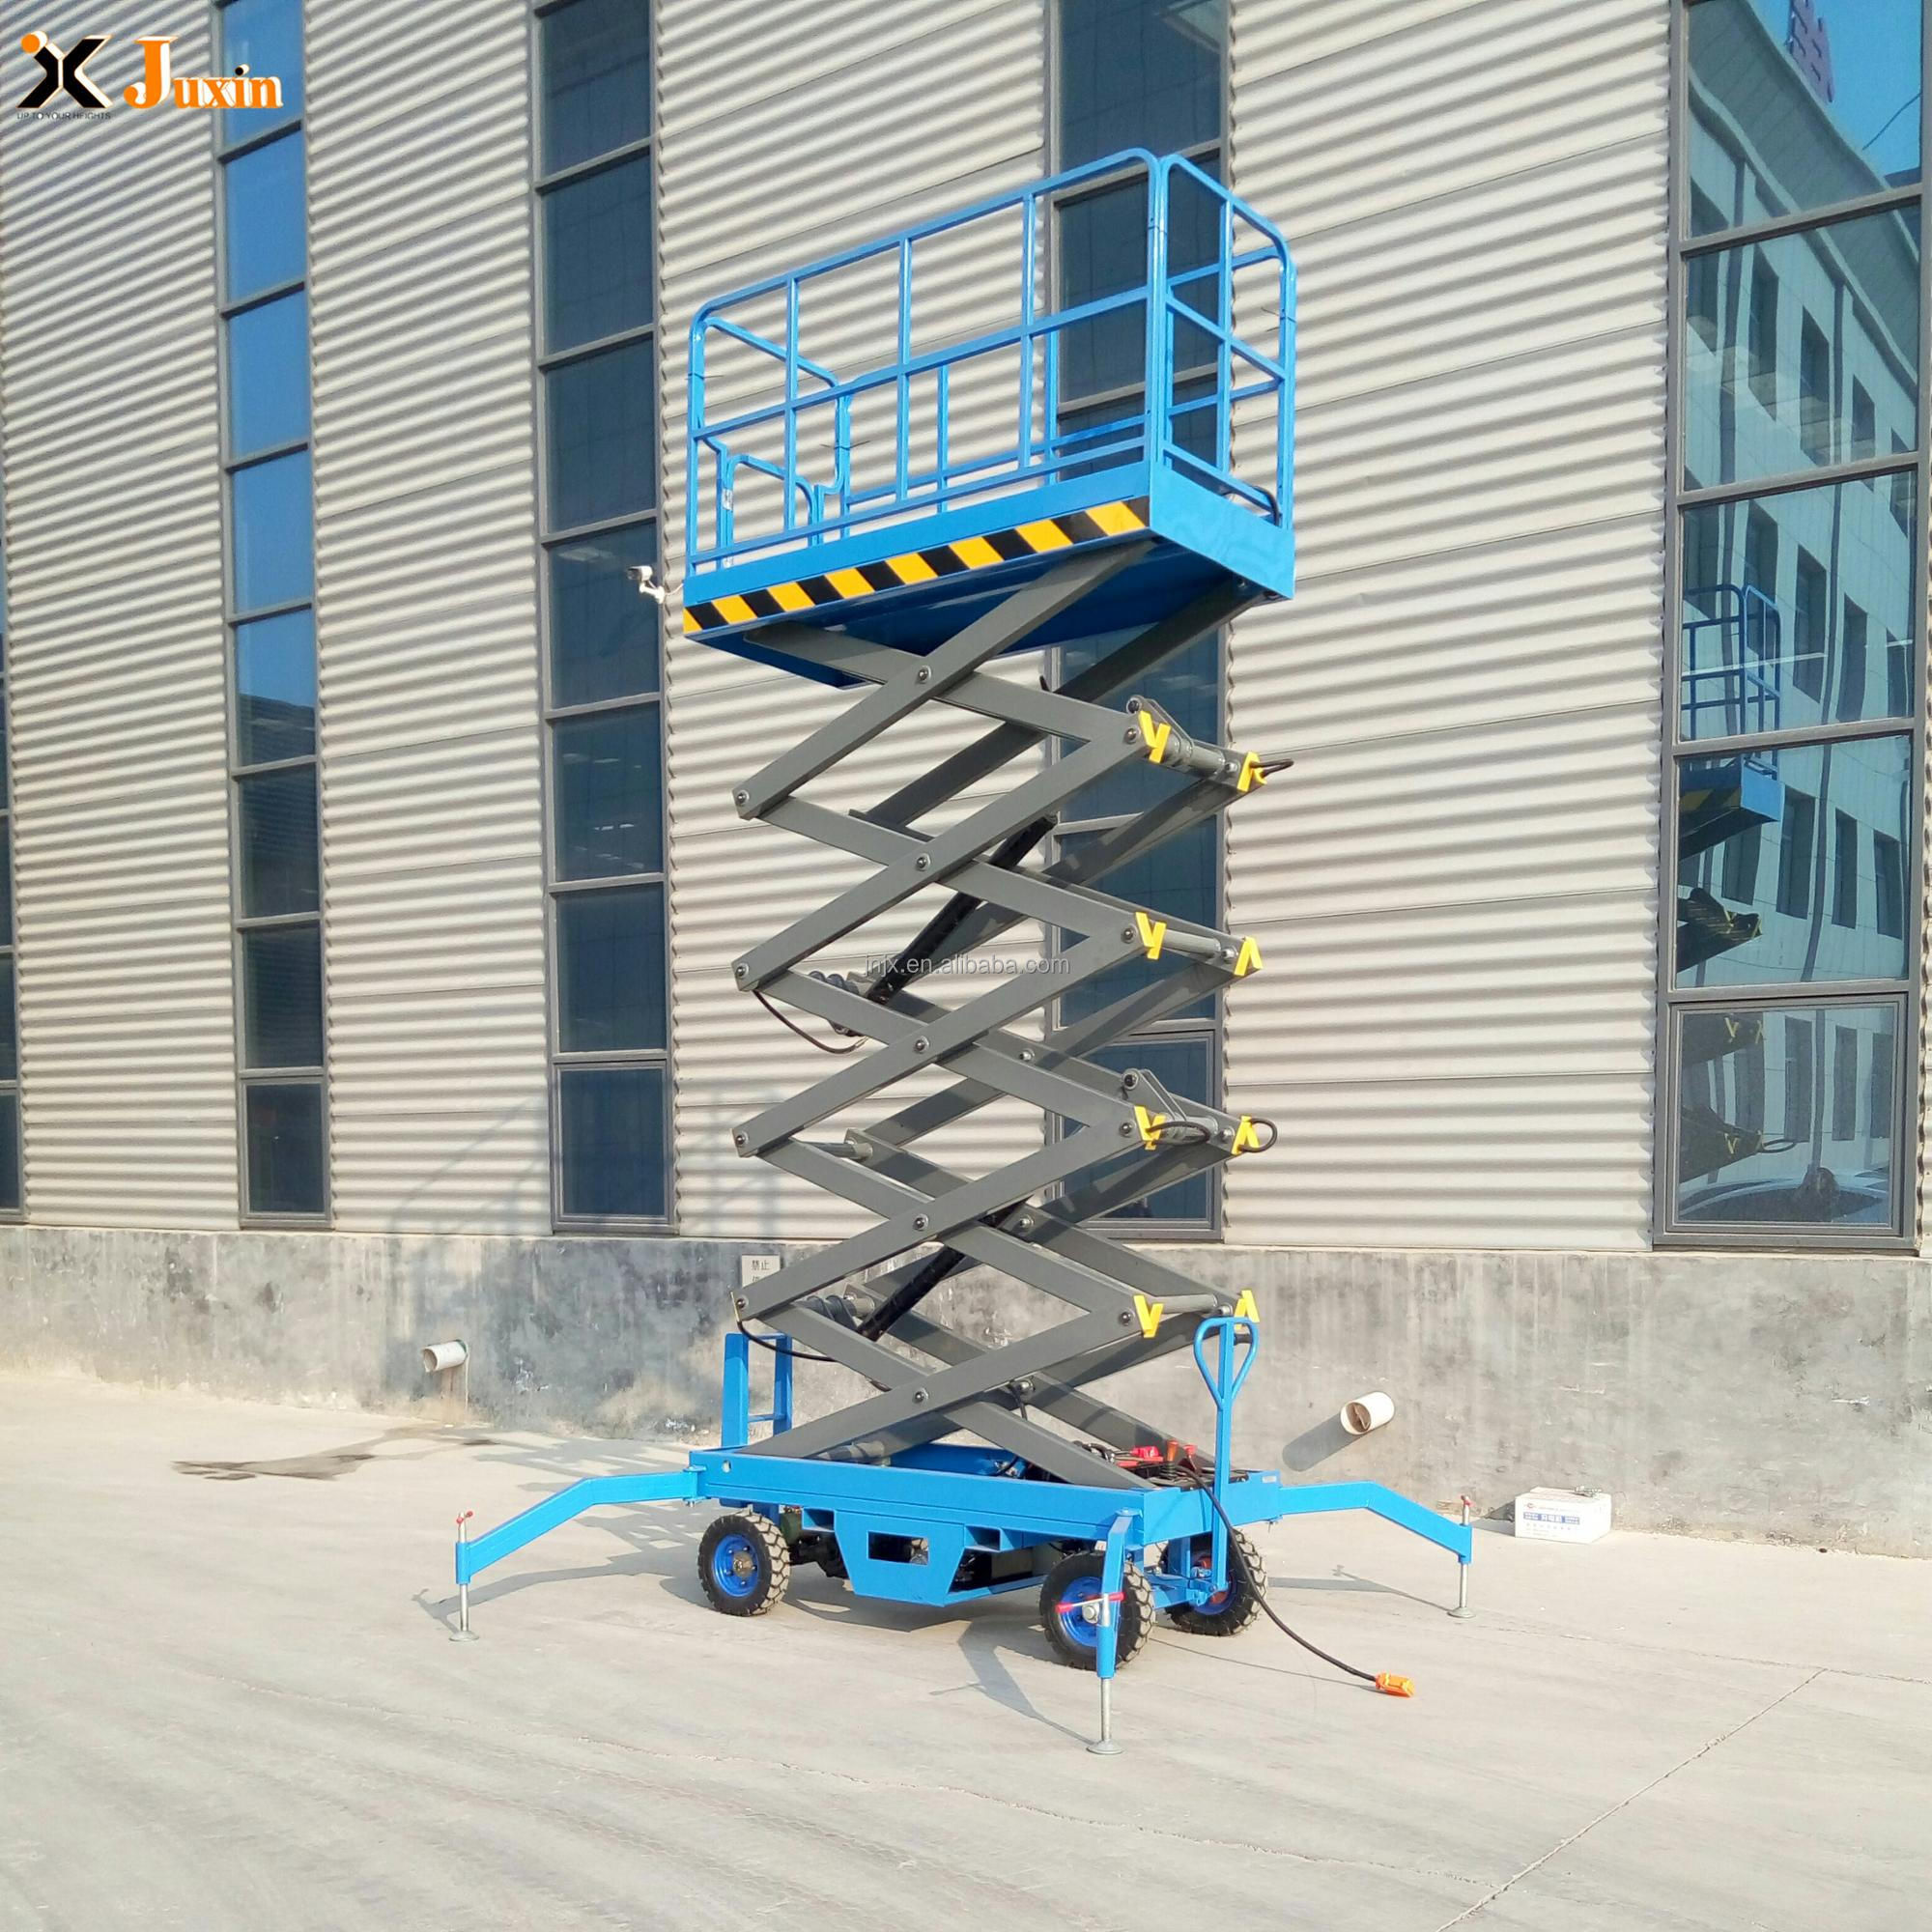 Manlift Hydraulic, Manlift Hydraulic Suppliers and Manufacturers at  Alibaba.com